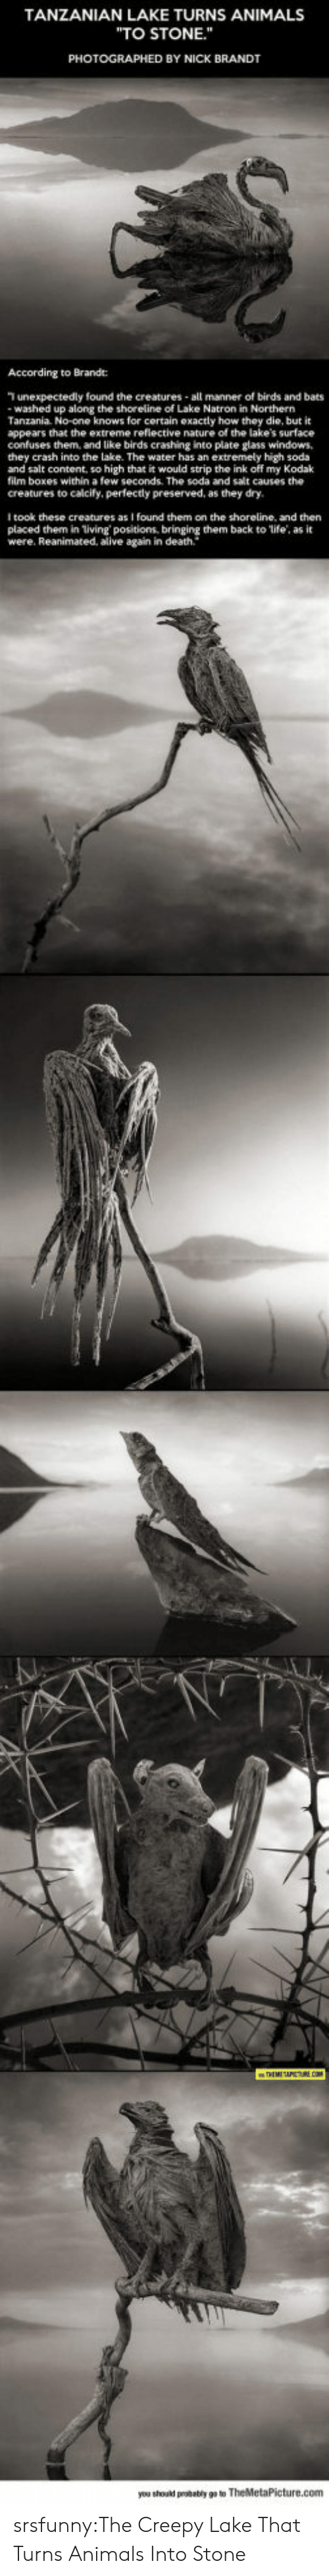 """Alive, Animals, and Creepy: TANZANIAN LAKE TURNS ANIMALS  """"TO STONE.""""  PHOTOGRAPHED BY NICK BRANDT  According to Brande:  T unexpectedly found the creatures all manner of birds and bats  washed up along the shoreline of Lake Natron in Northern  Tanzania. No-one knows for certain exactly how they die, but it  appears that the extreme refiective nature of the lake's surface  confuses them, and like birds crashing into plate glass windows,  they crash into the lake. The water has an extremely high soda  and salt content, so high that it would strip the ink off my Kodak  film boxes within a few seconds. The soda and salt causes the  creatures to calcify, perfectly preserved, as they dry.  I took these creatures as I found them on the shoreline, and then  placed them in living positions, bringing them back to life, as it  were. Reanimated, alive again in death. srsfunny:The Creepy Lake That Turns Animals Into Stone"""